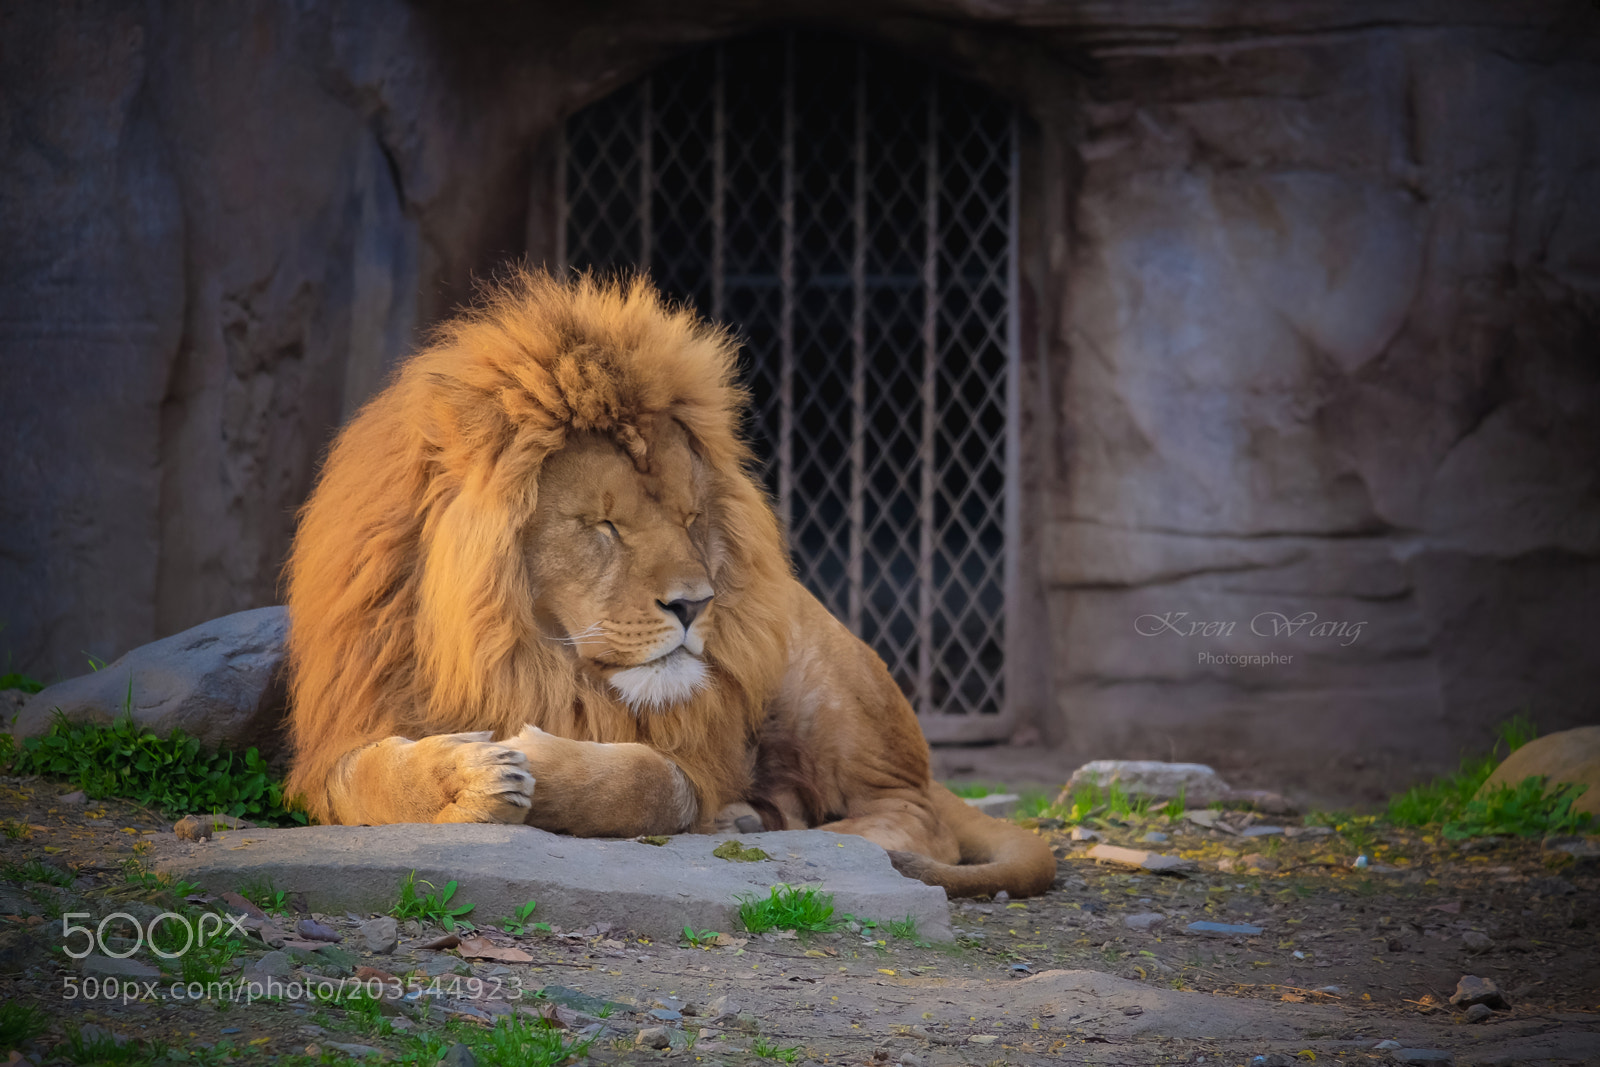 King of beasts, Fujifilm X-T10, XC50-230mmF4.5-6.7 OIS II